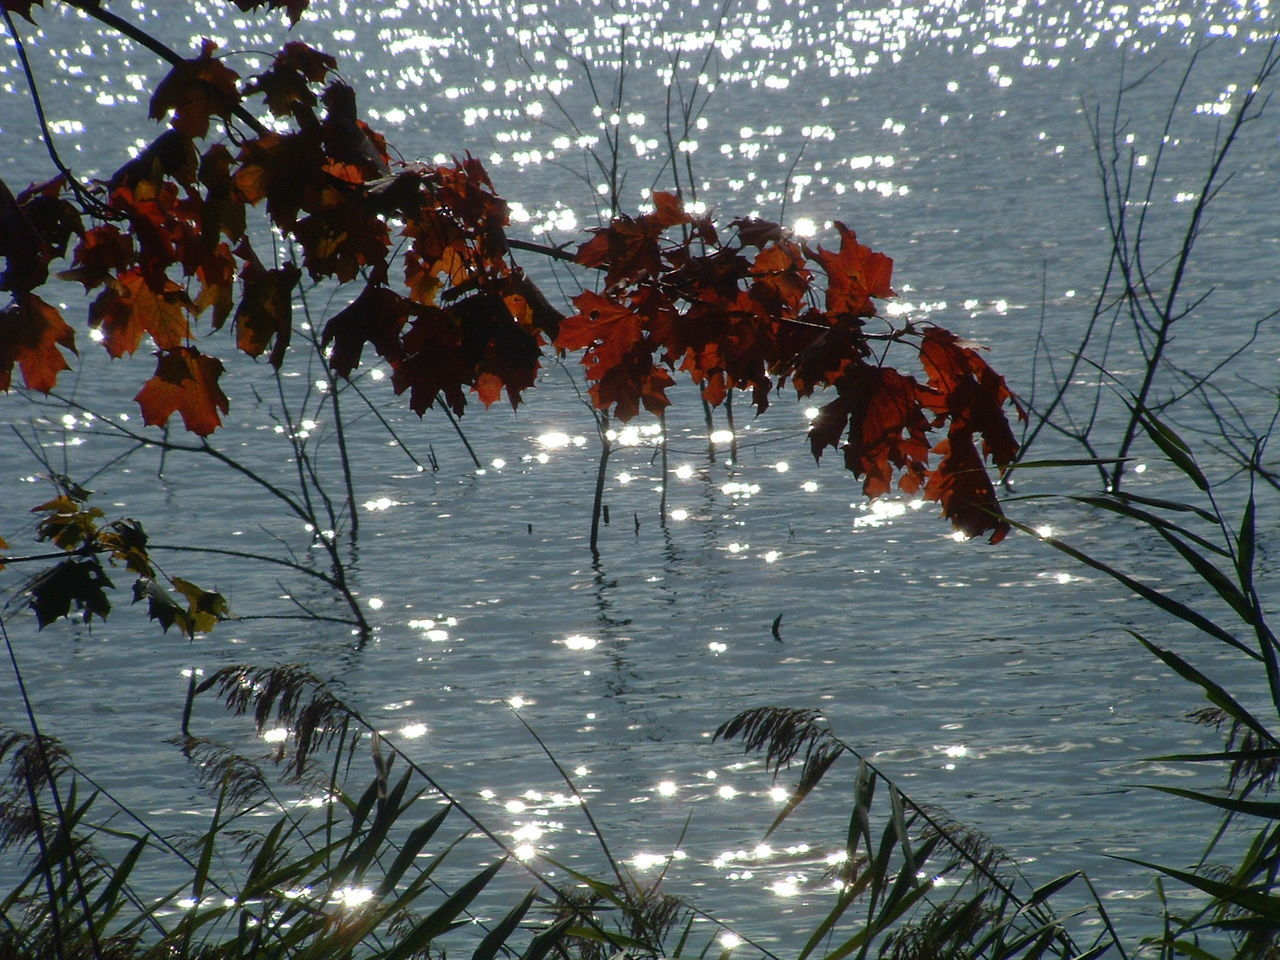 autumn, water, leaf, nature, beauty in nature, change, growth, tree, tranquility, no people, outdoors, maple leaf, lake, plant, branch, day, tranquil scene, scenics, floating on water, fragility, maple, close-up, freshness